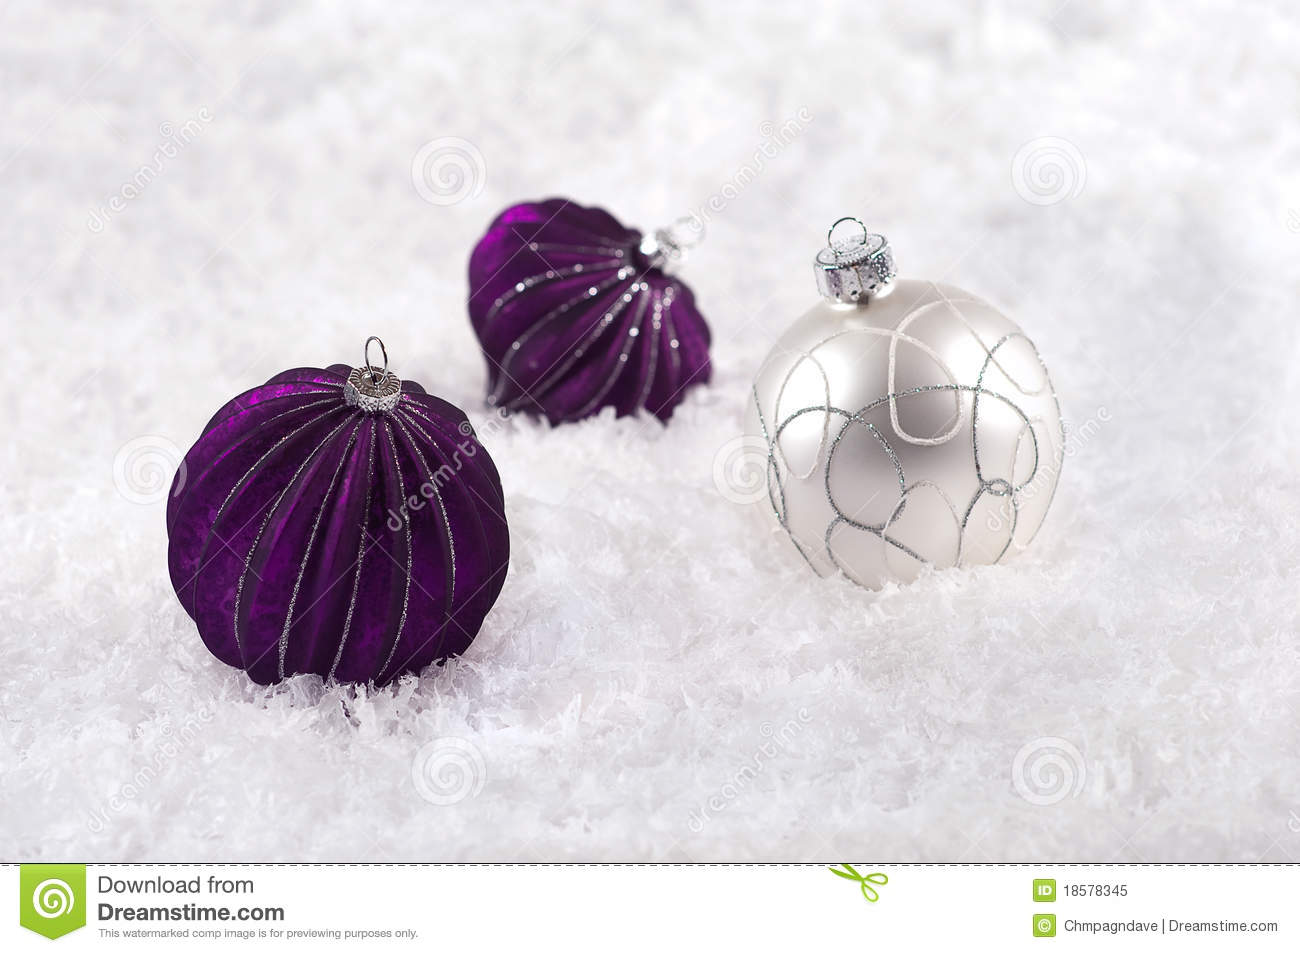 Purple silver and white christmas decorations - Purple Silver And White Christmas Decorations Christmas Holiday Purple Snow Three White Ornament Decoration Bauble